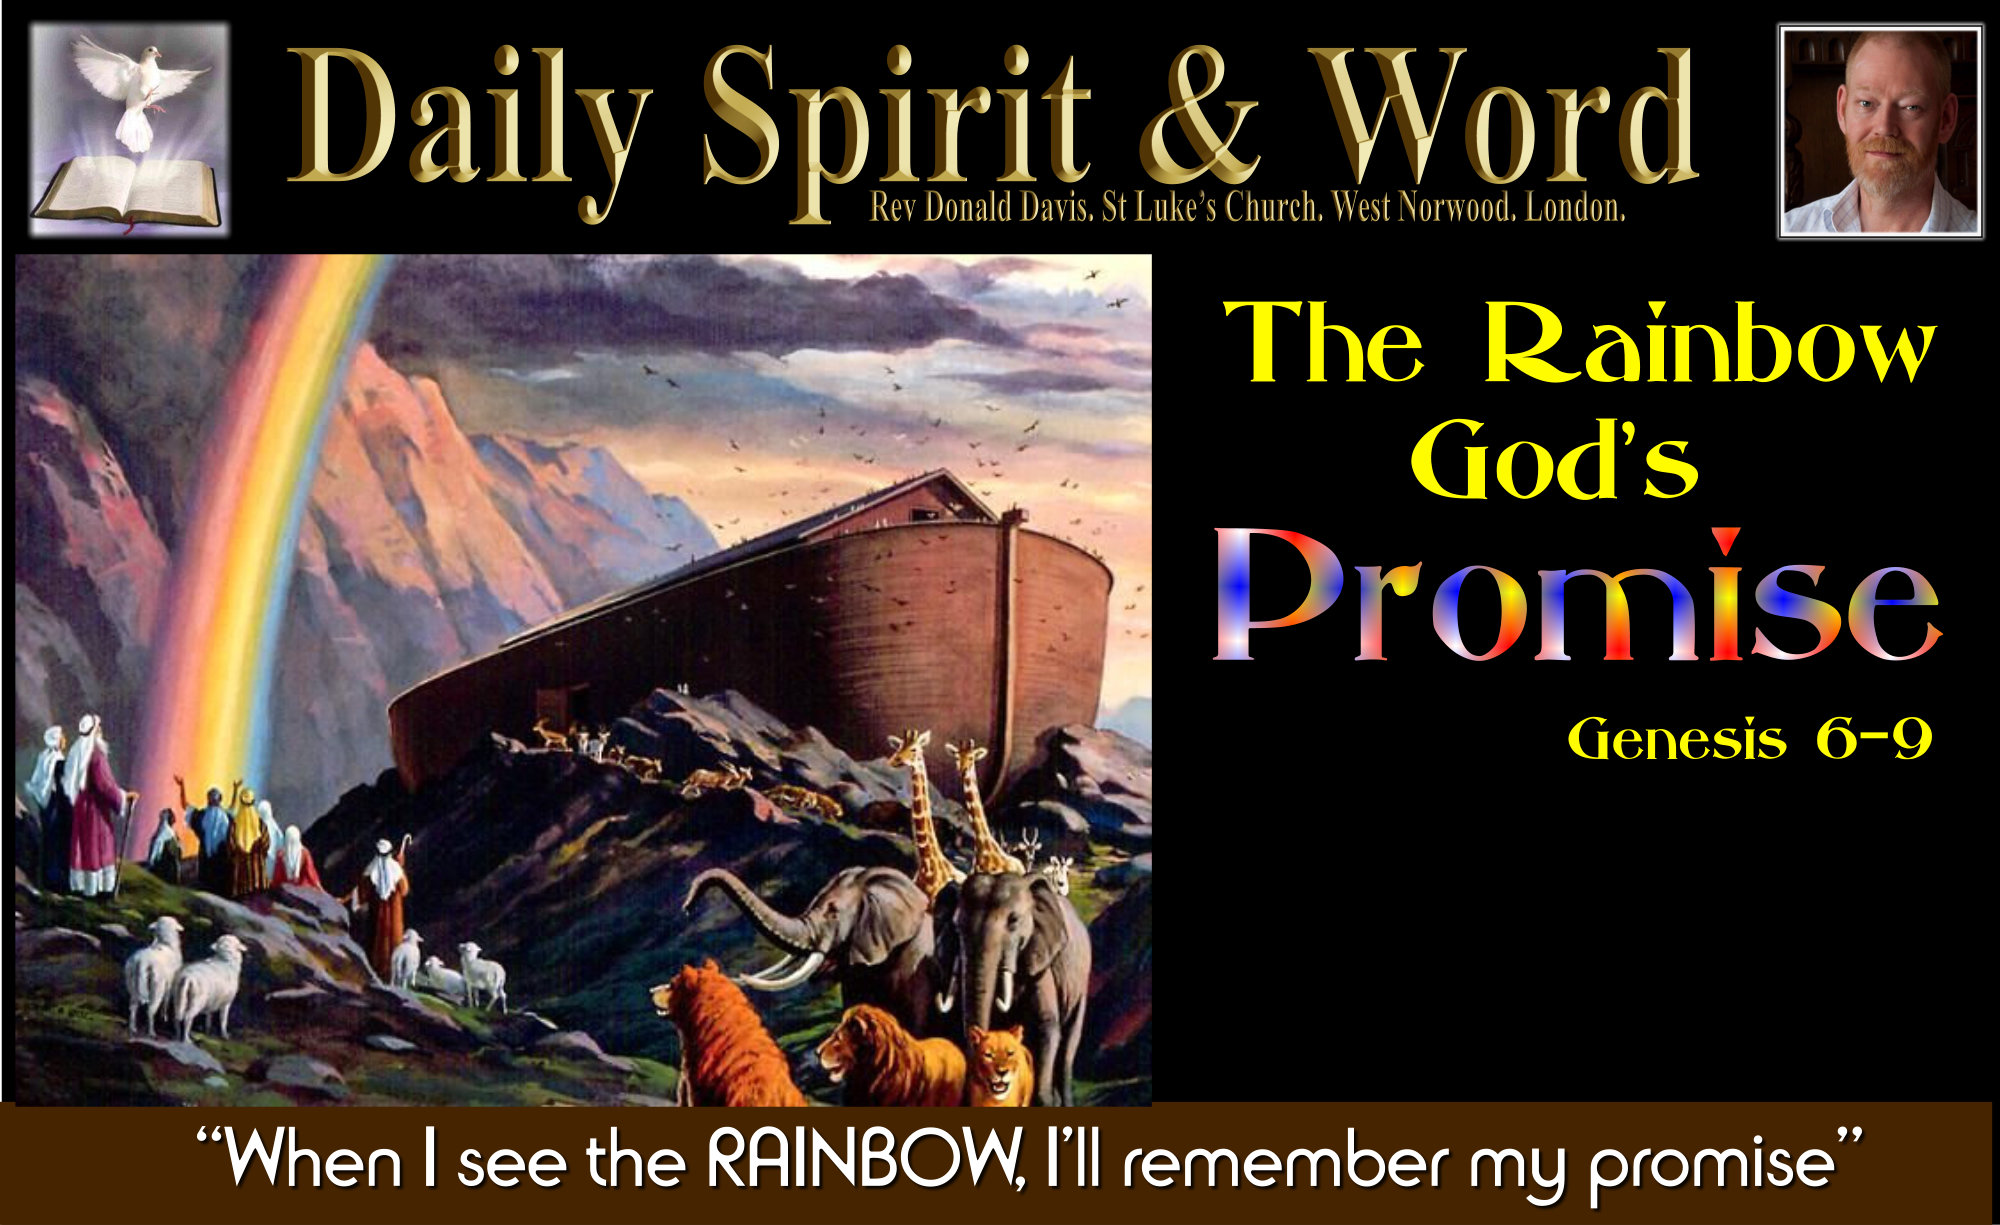 The rainbow is a symbol of God's promise